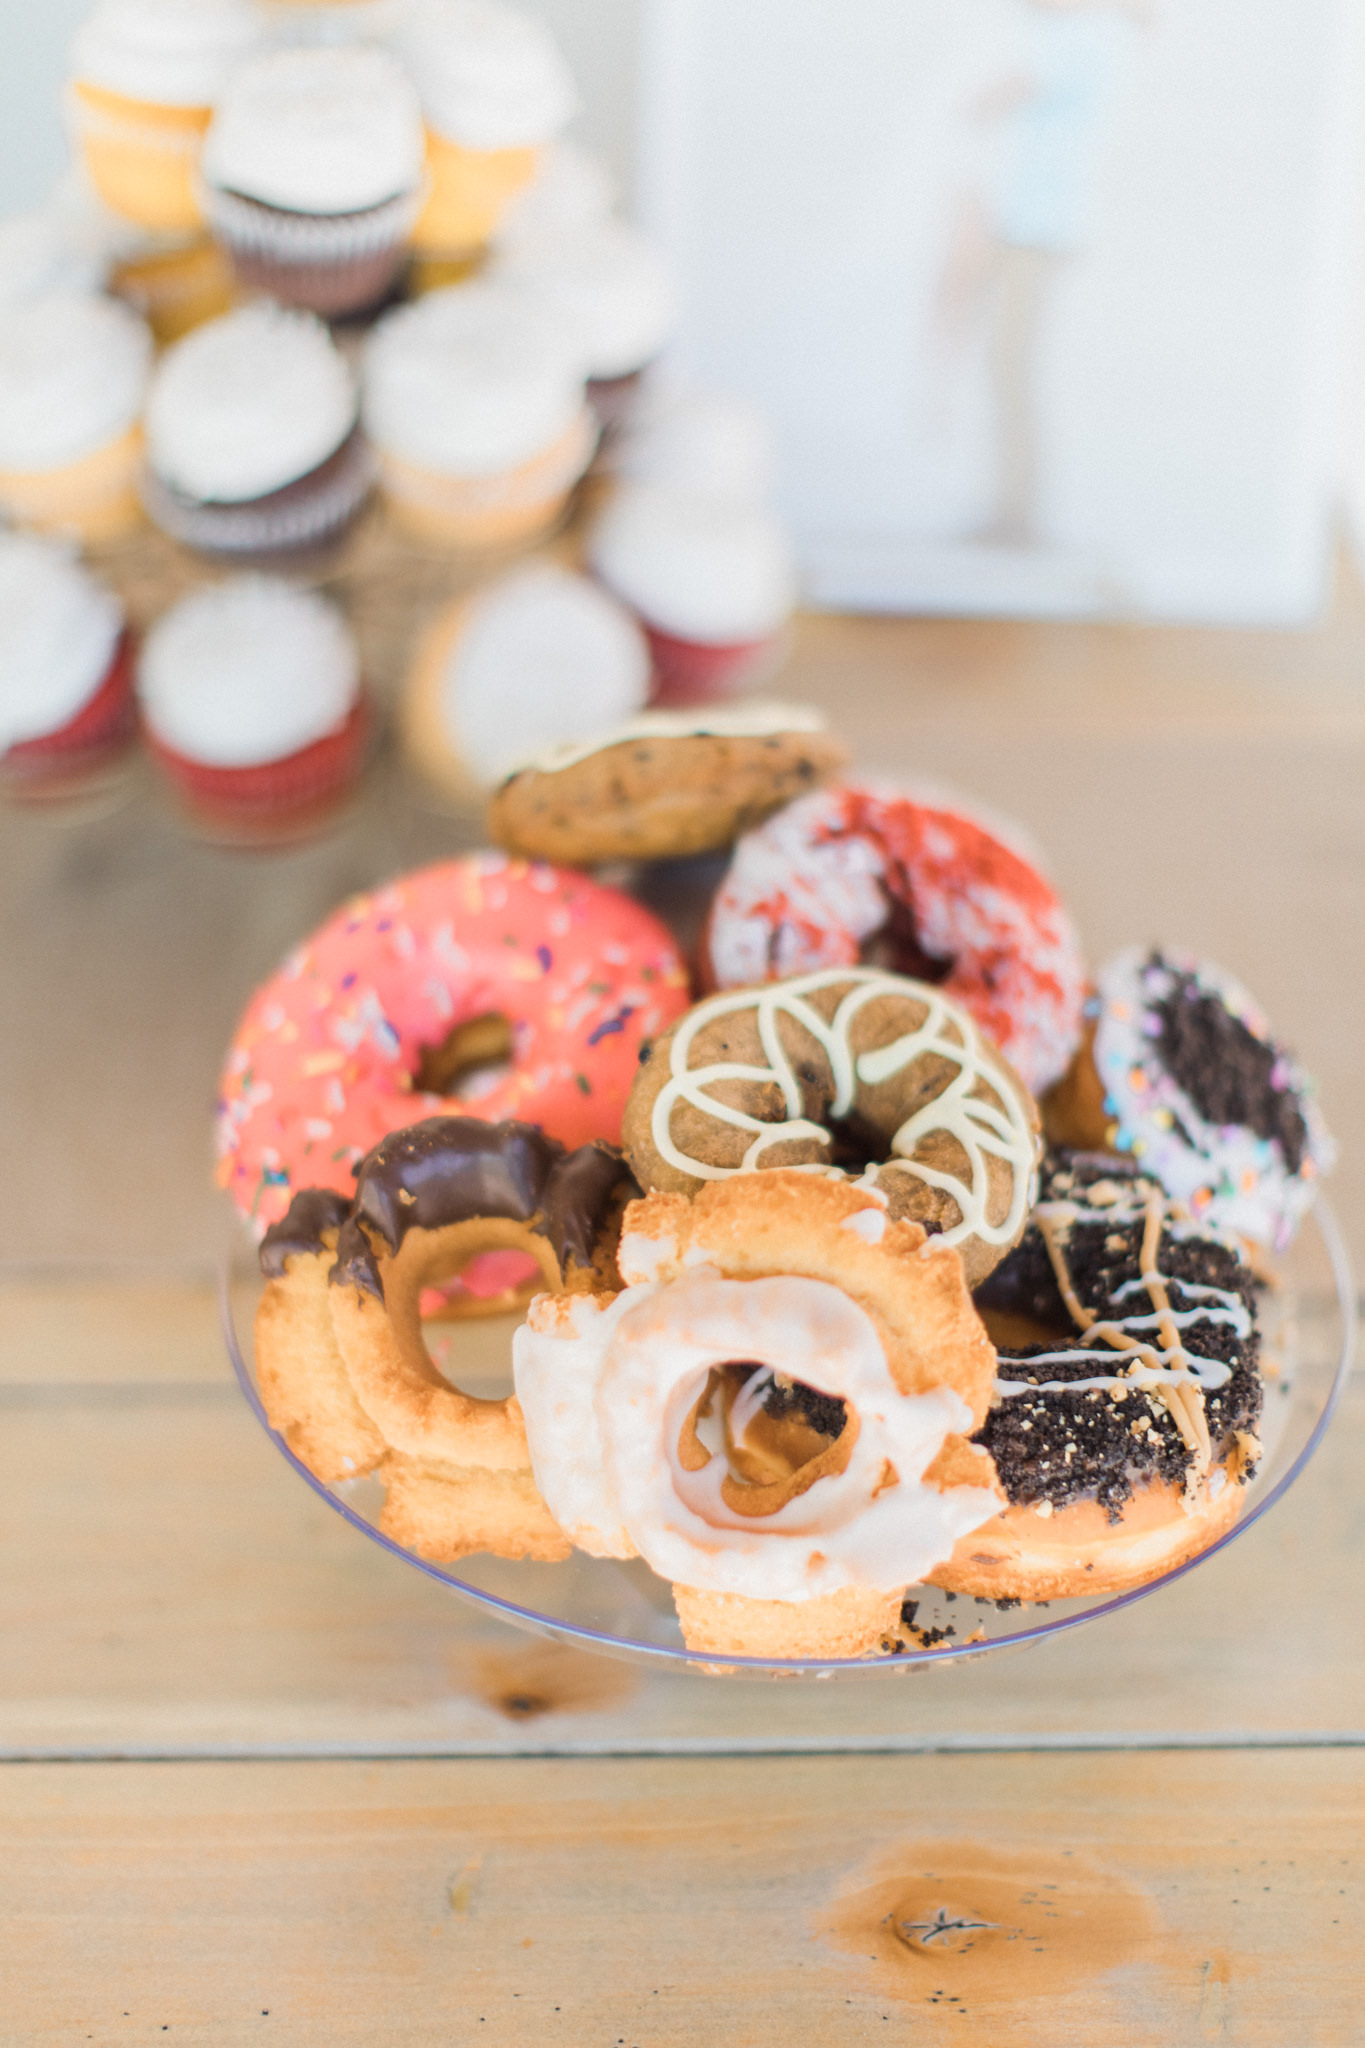 #weddingdonuts #doughnuts #donuts #weddingplannerlasvegas,#lasvegasweddingcoordinators,#weddingcoordinatorslasvegas,#weddingcoordinatorlasvegas,#lasvegasweddingplanner #desirableeventsbydesi #wedding, #love #lasvegaswedding, #weddinglasvegas, #weddingplannerslasvegas, #lasvegasweddingplanners, #layersoflovely, #lasvegaswedding, #susieandwill, #rusticwedding, #wedding, #historic5thstreetschool, #downtownlasvegas, #historic5thstreetschoolweddings, #lasvegasweddings,#historicfifthstreetschool #historicfifthstreetschoolwedding #historicfifthstreetschoollasvegas #historic5thstreetschoollasvegas #outdoorweddinglasvegas #lasvegasoutdoorwedding #historic5thstreetschooloutdoorwedding